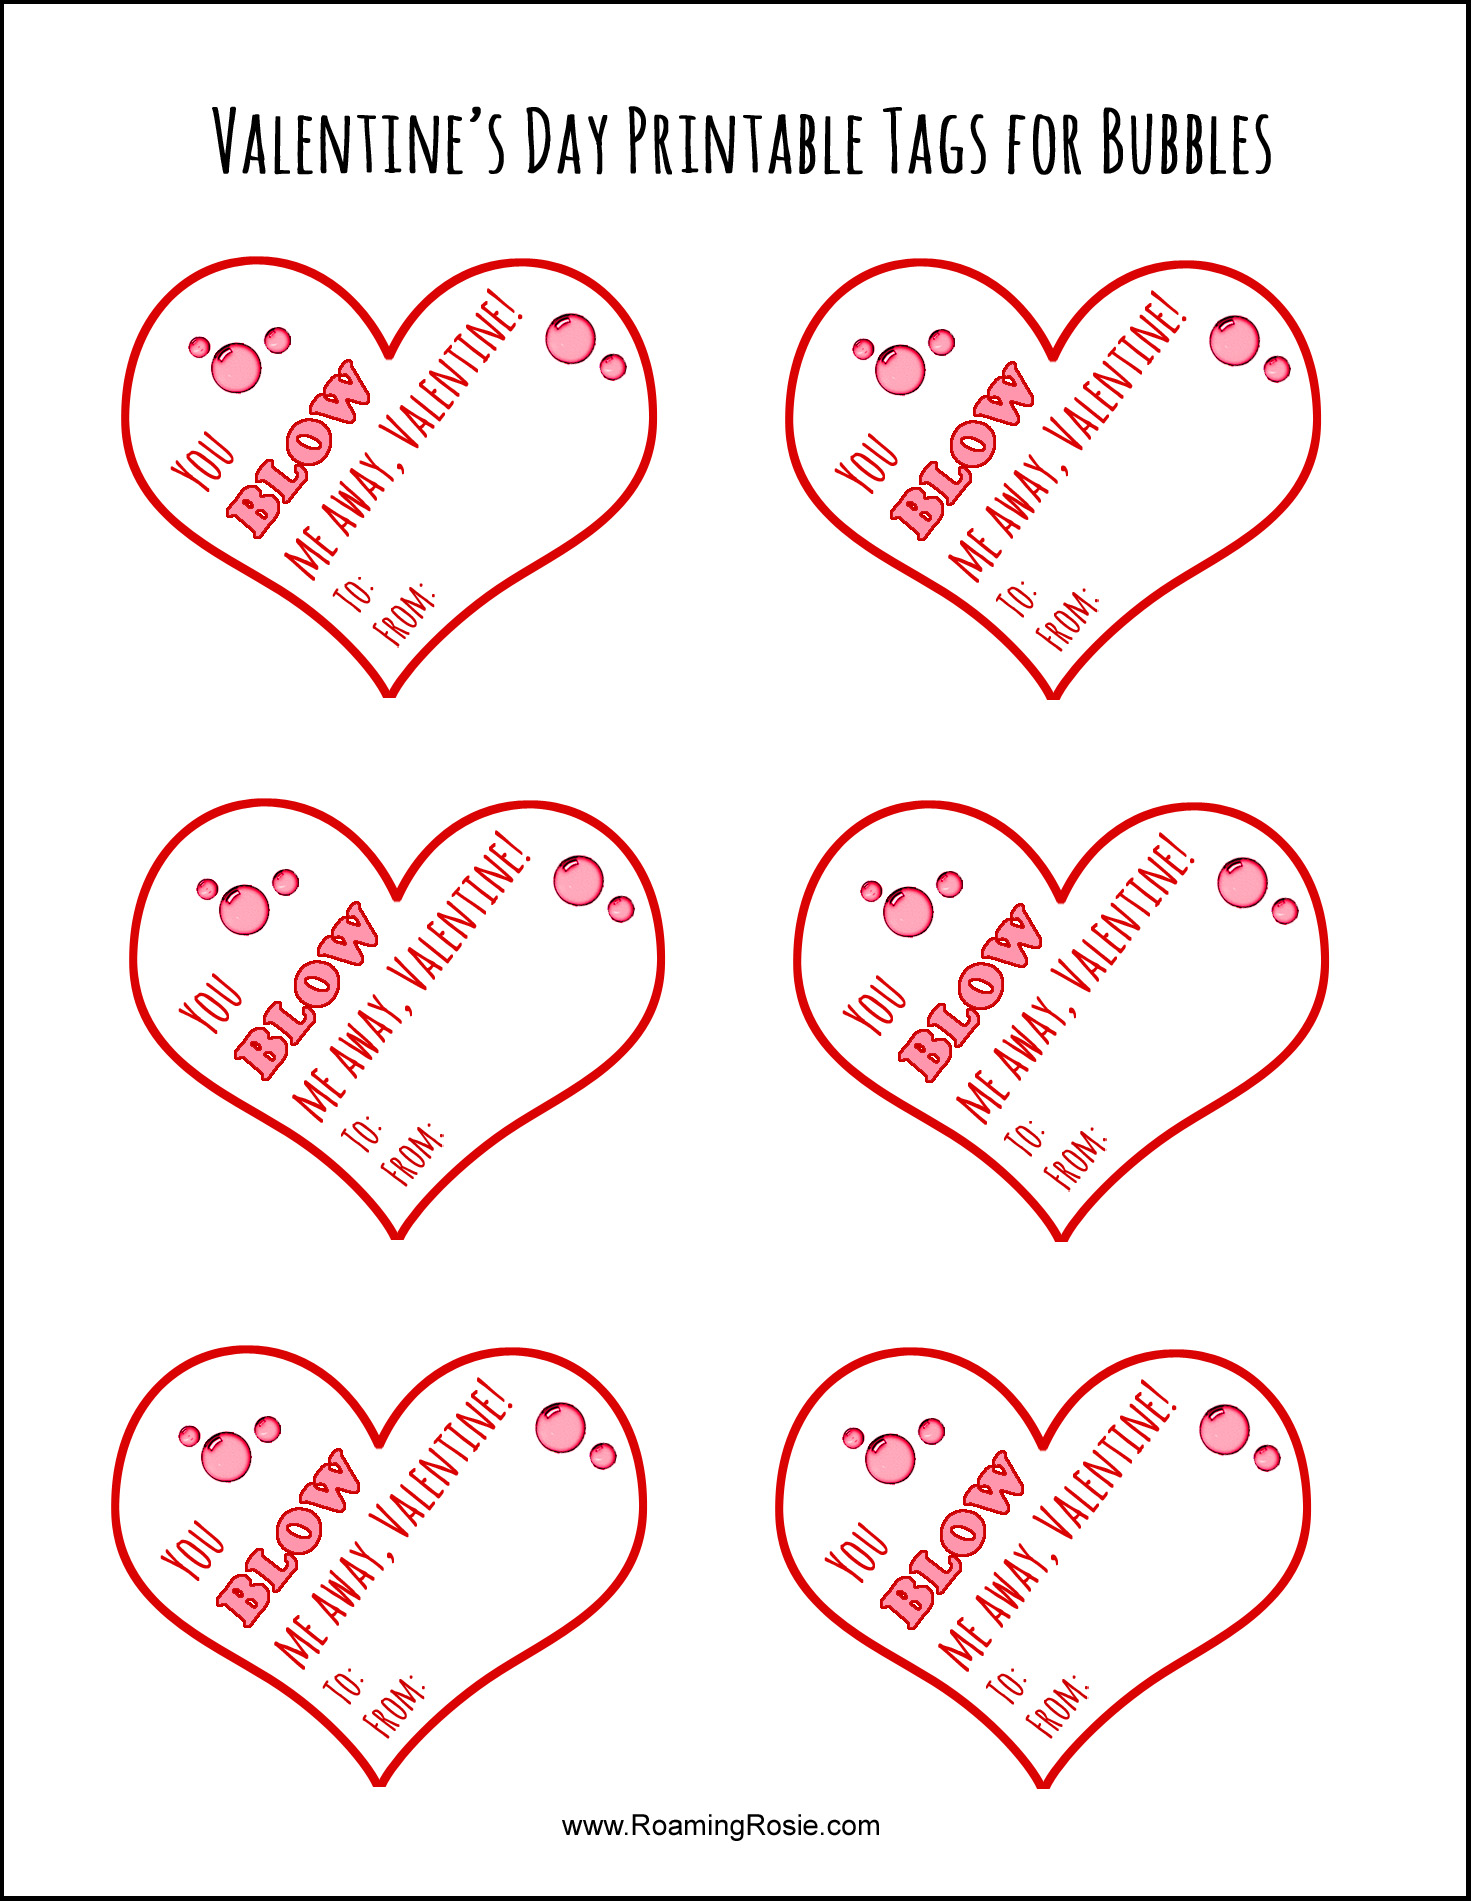 image regarding Bubble Valentine Printable titled Valentines Working day Printable Tags for Bubbles Roaming Rosie